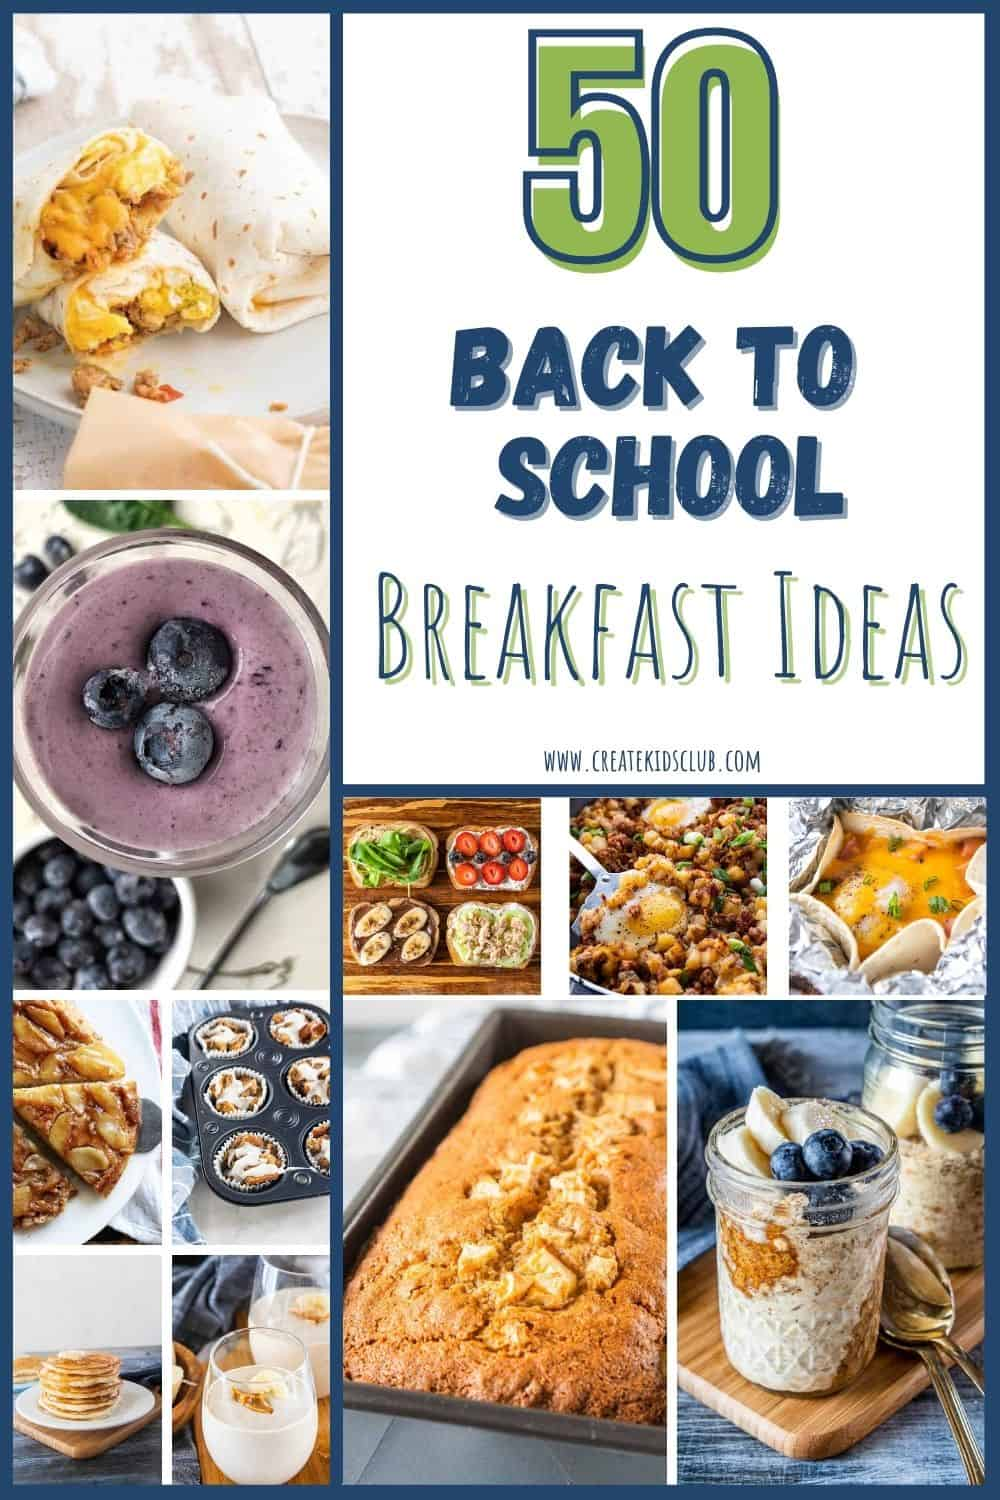 A compiling of breakfast recipe photos including egg burrito, overnight oats, smoothies, and pancakes with the words 50 back to school breakfast ideas.